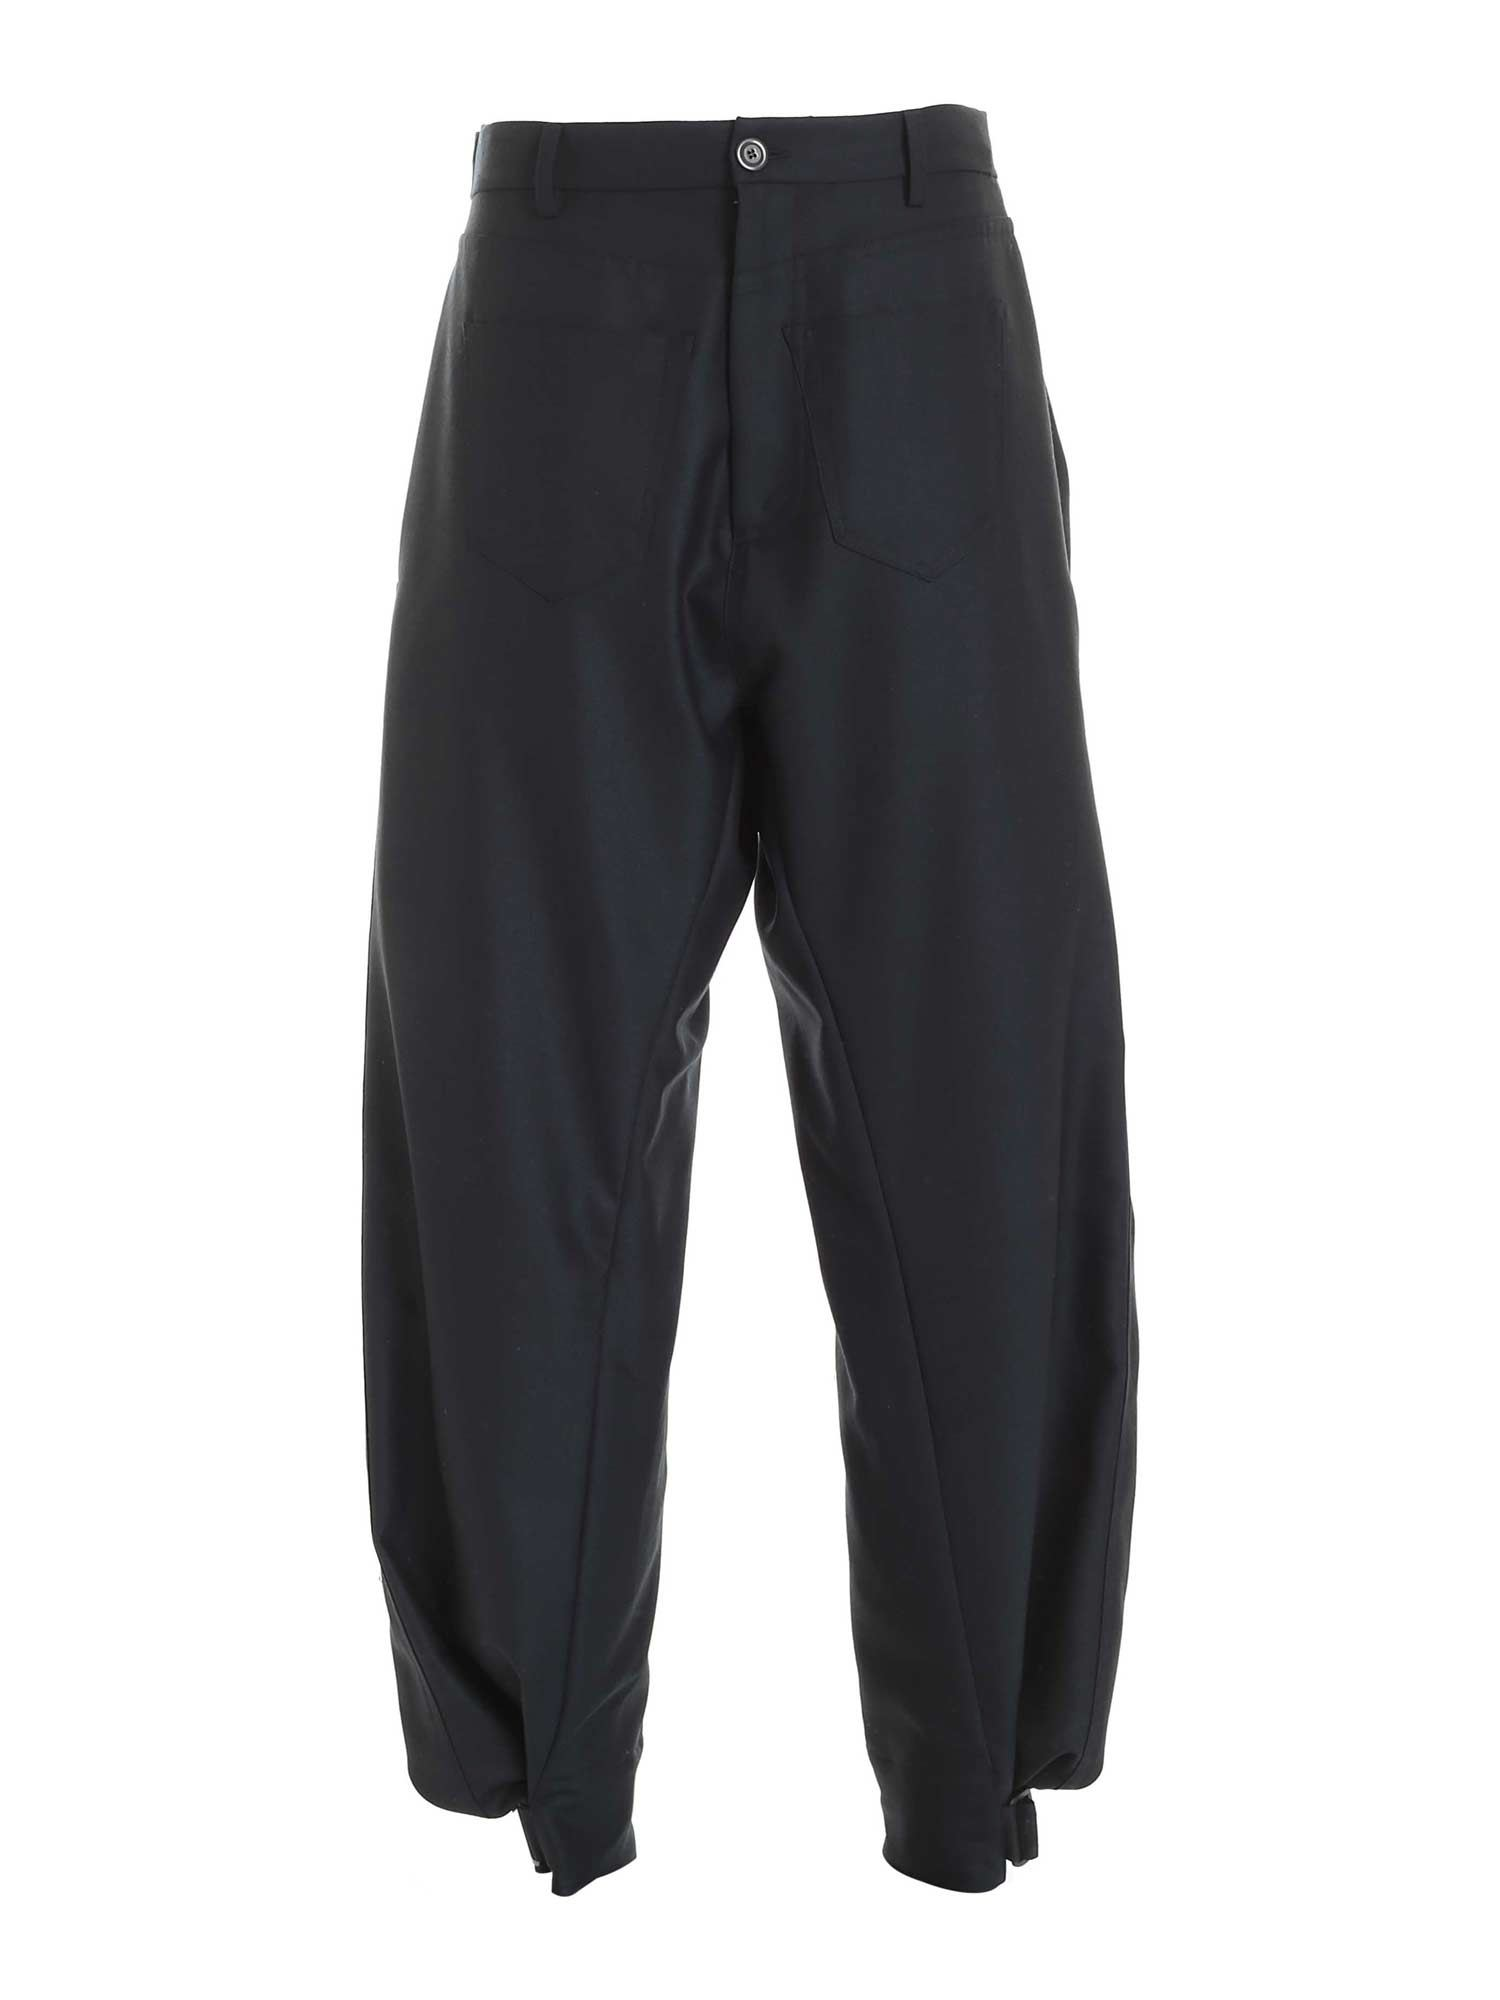 Vivienne Westwood BACK SLIT PANTS IN DARK GREEN